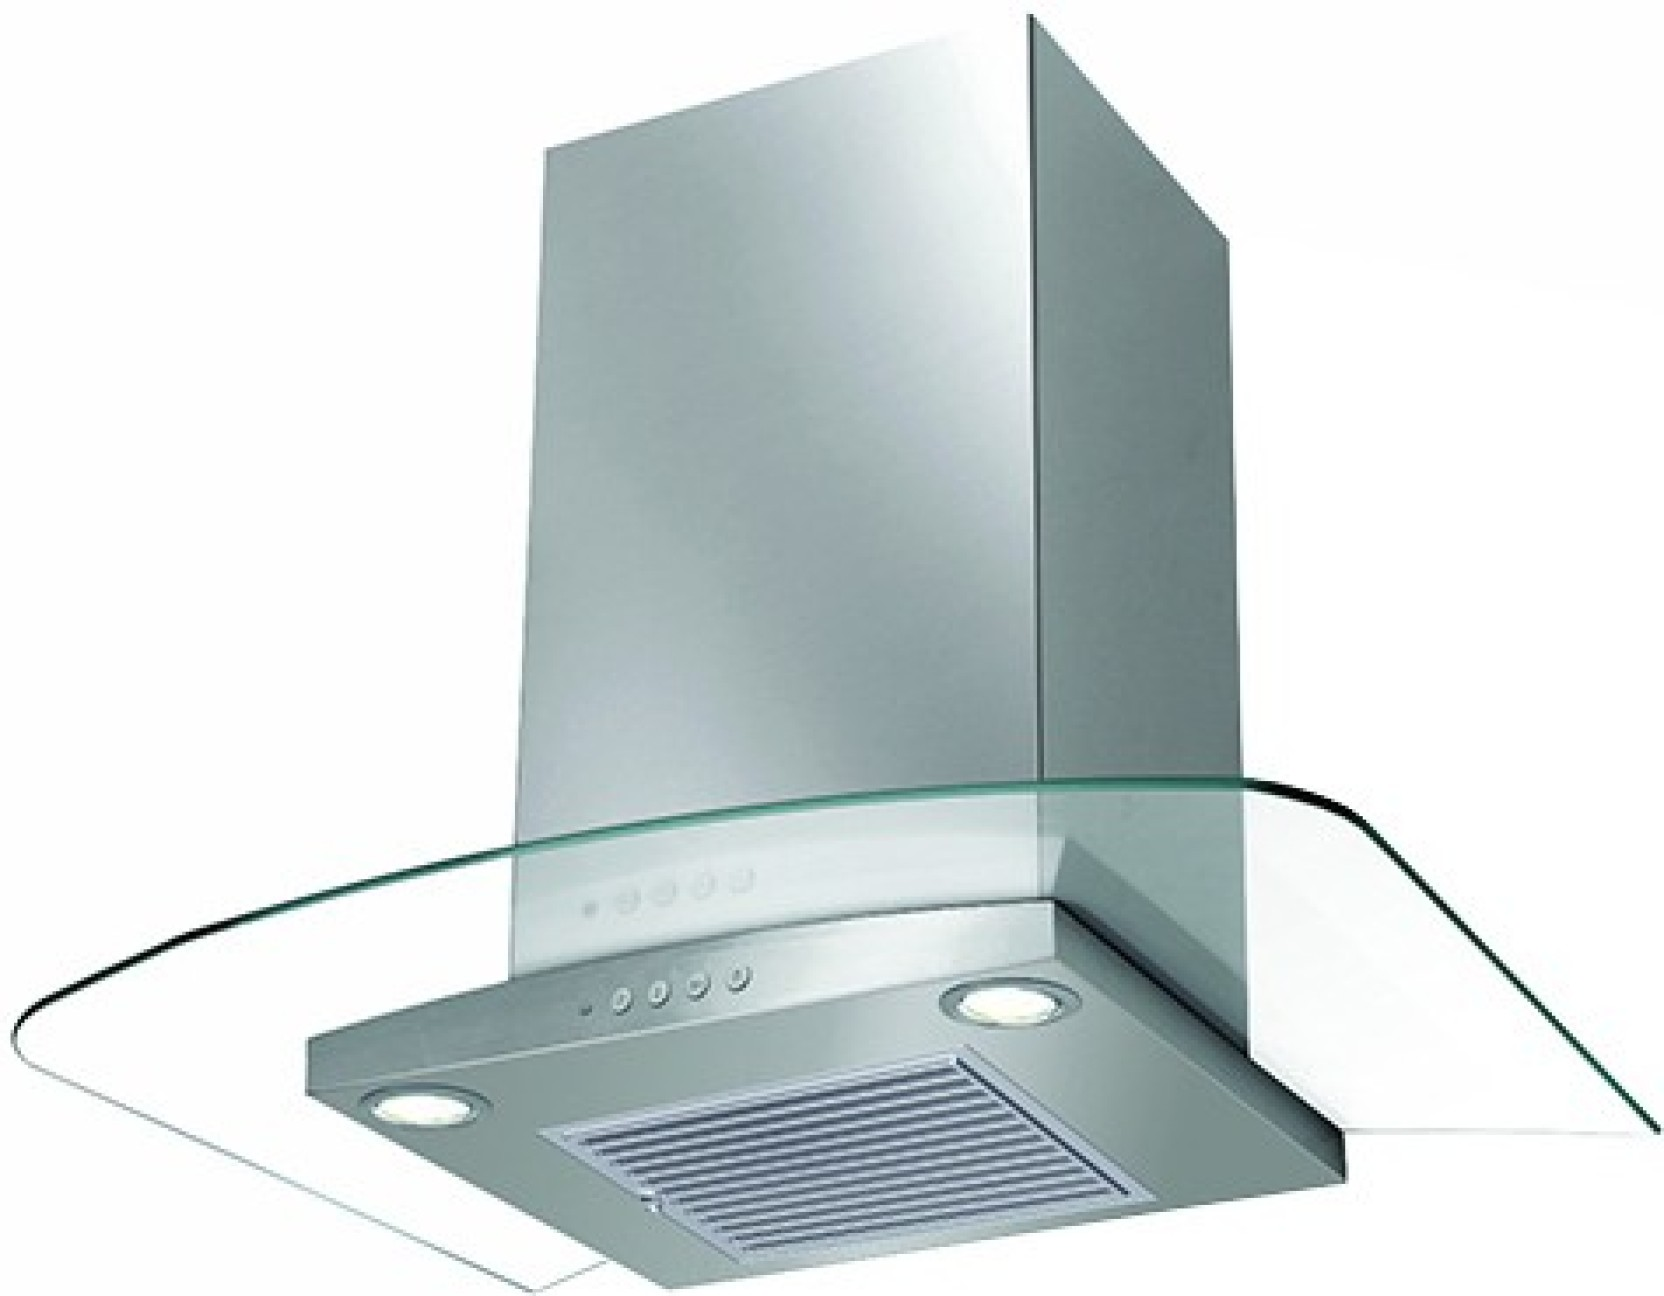 Faber Hood Ray Plus LTW 60 (110.0329.043) Wall Mounted Chimney Price ...